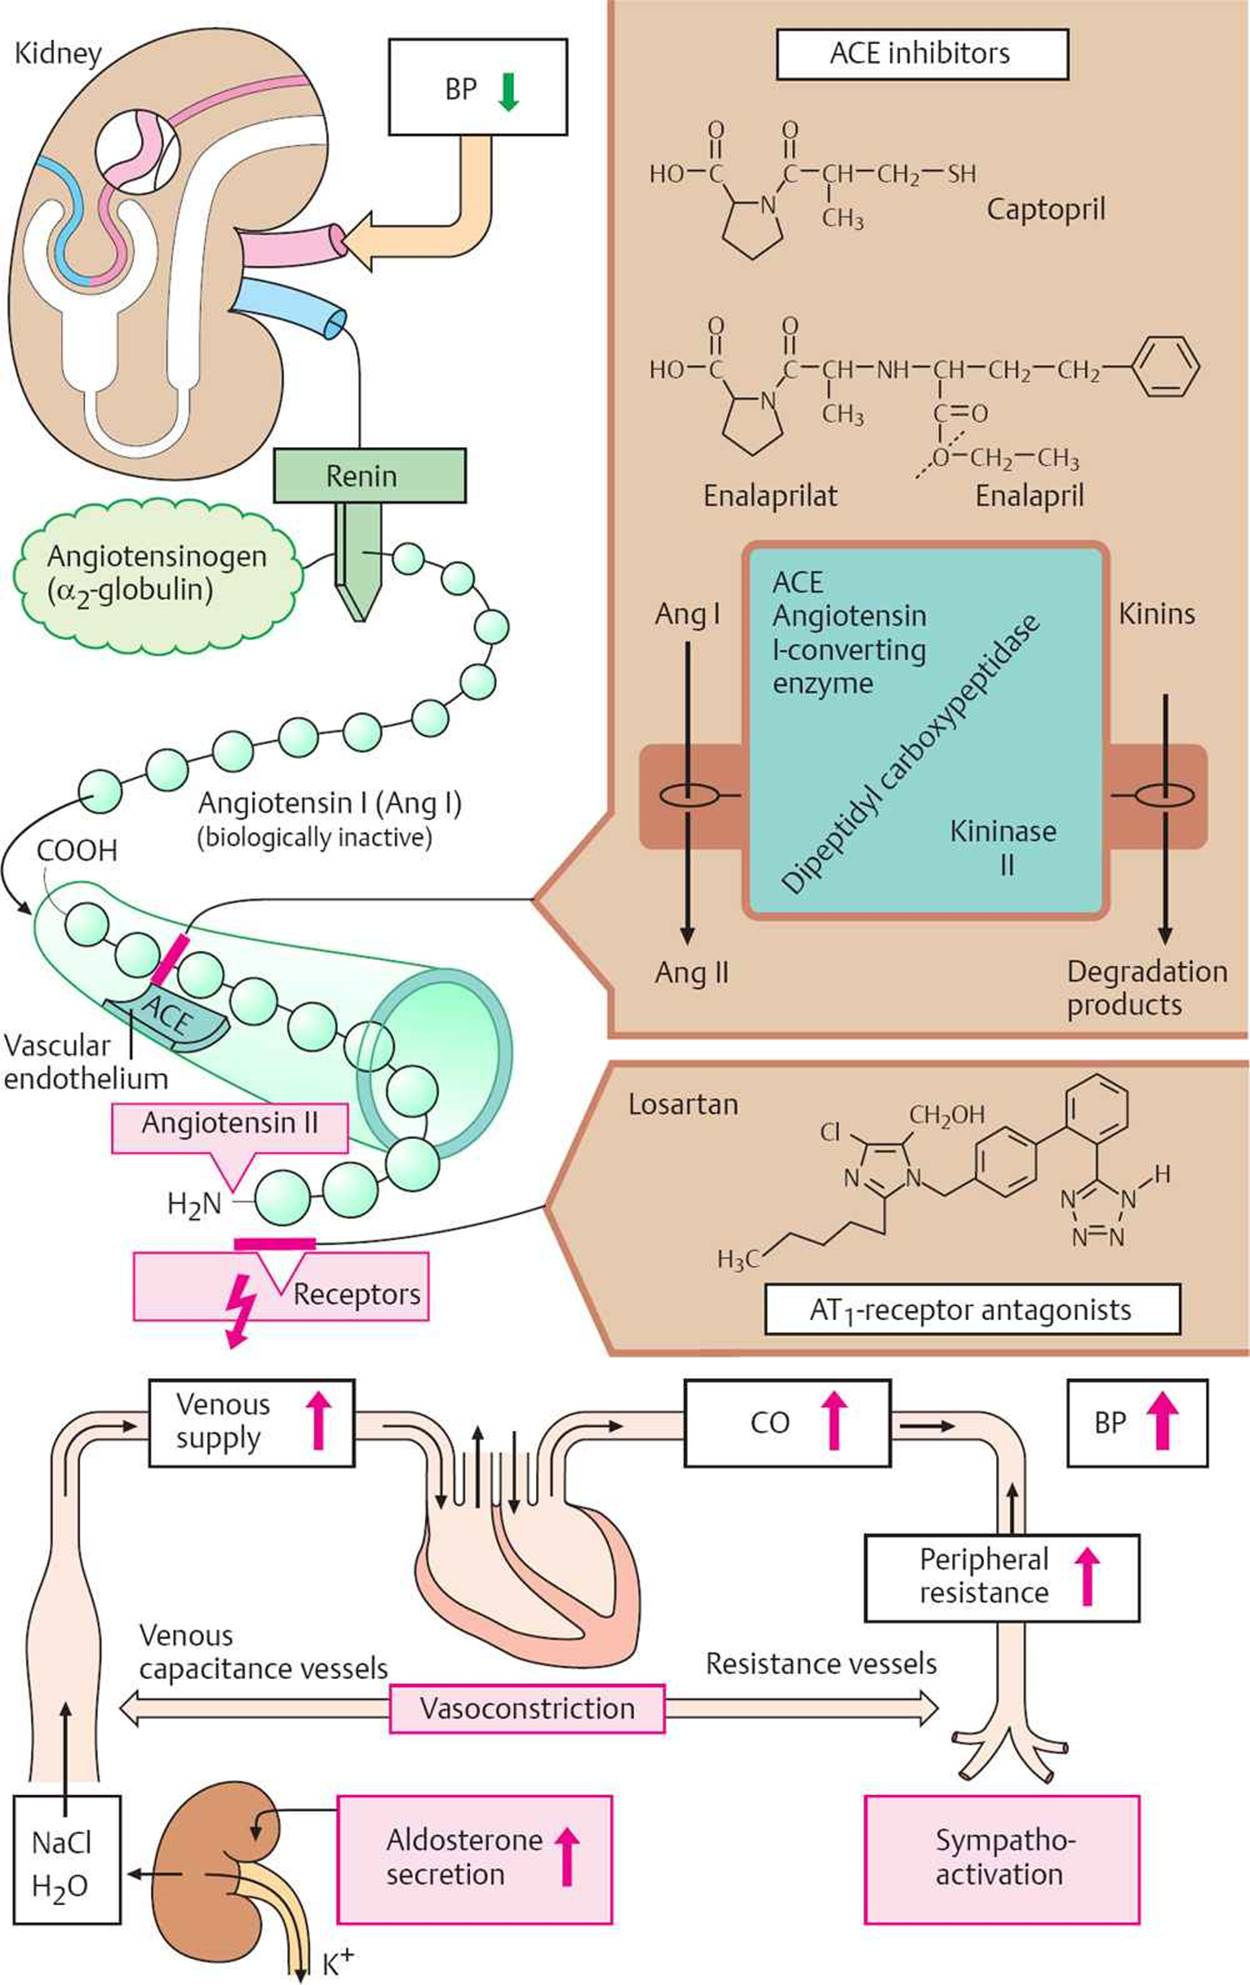 Antihypertensive Drugs Pharmacology An Illustrated Review